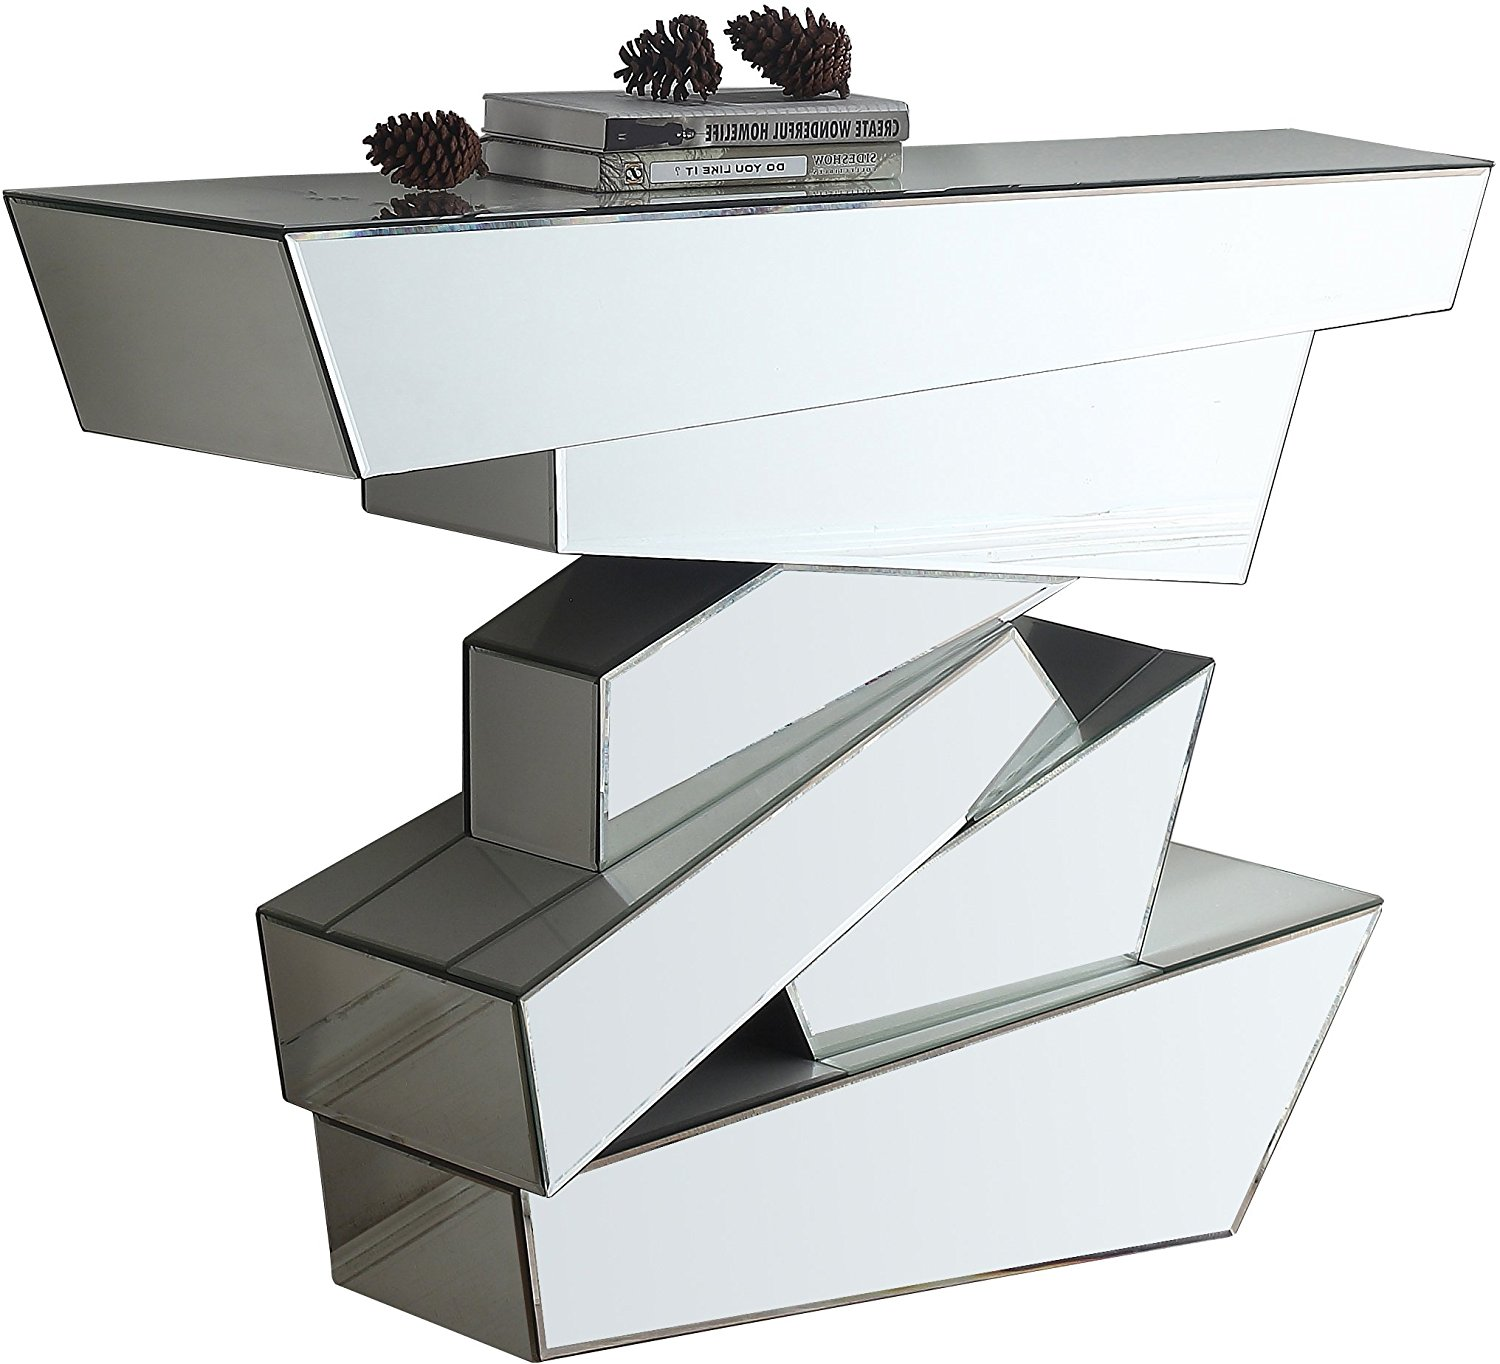 console tables 10 Console Tables With An Exquisite Geometric Design 4 10 Console Tables With An Exquisite Geometric Design